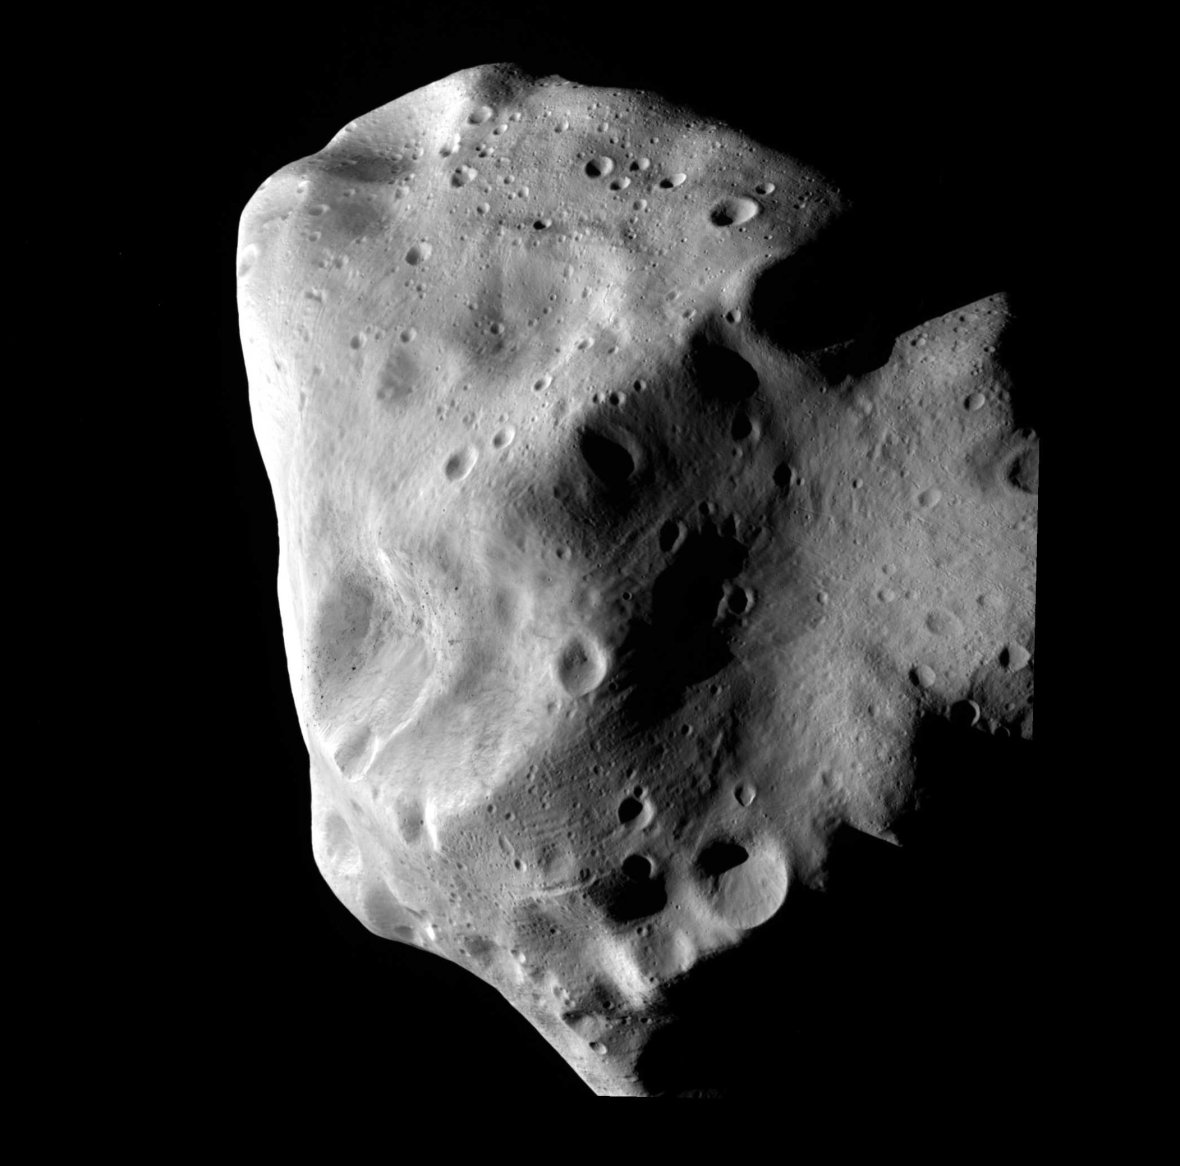 ESO image of asteroid Lutetia, via wikipedia